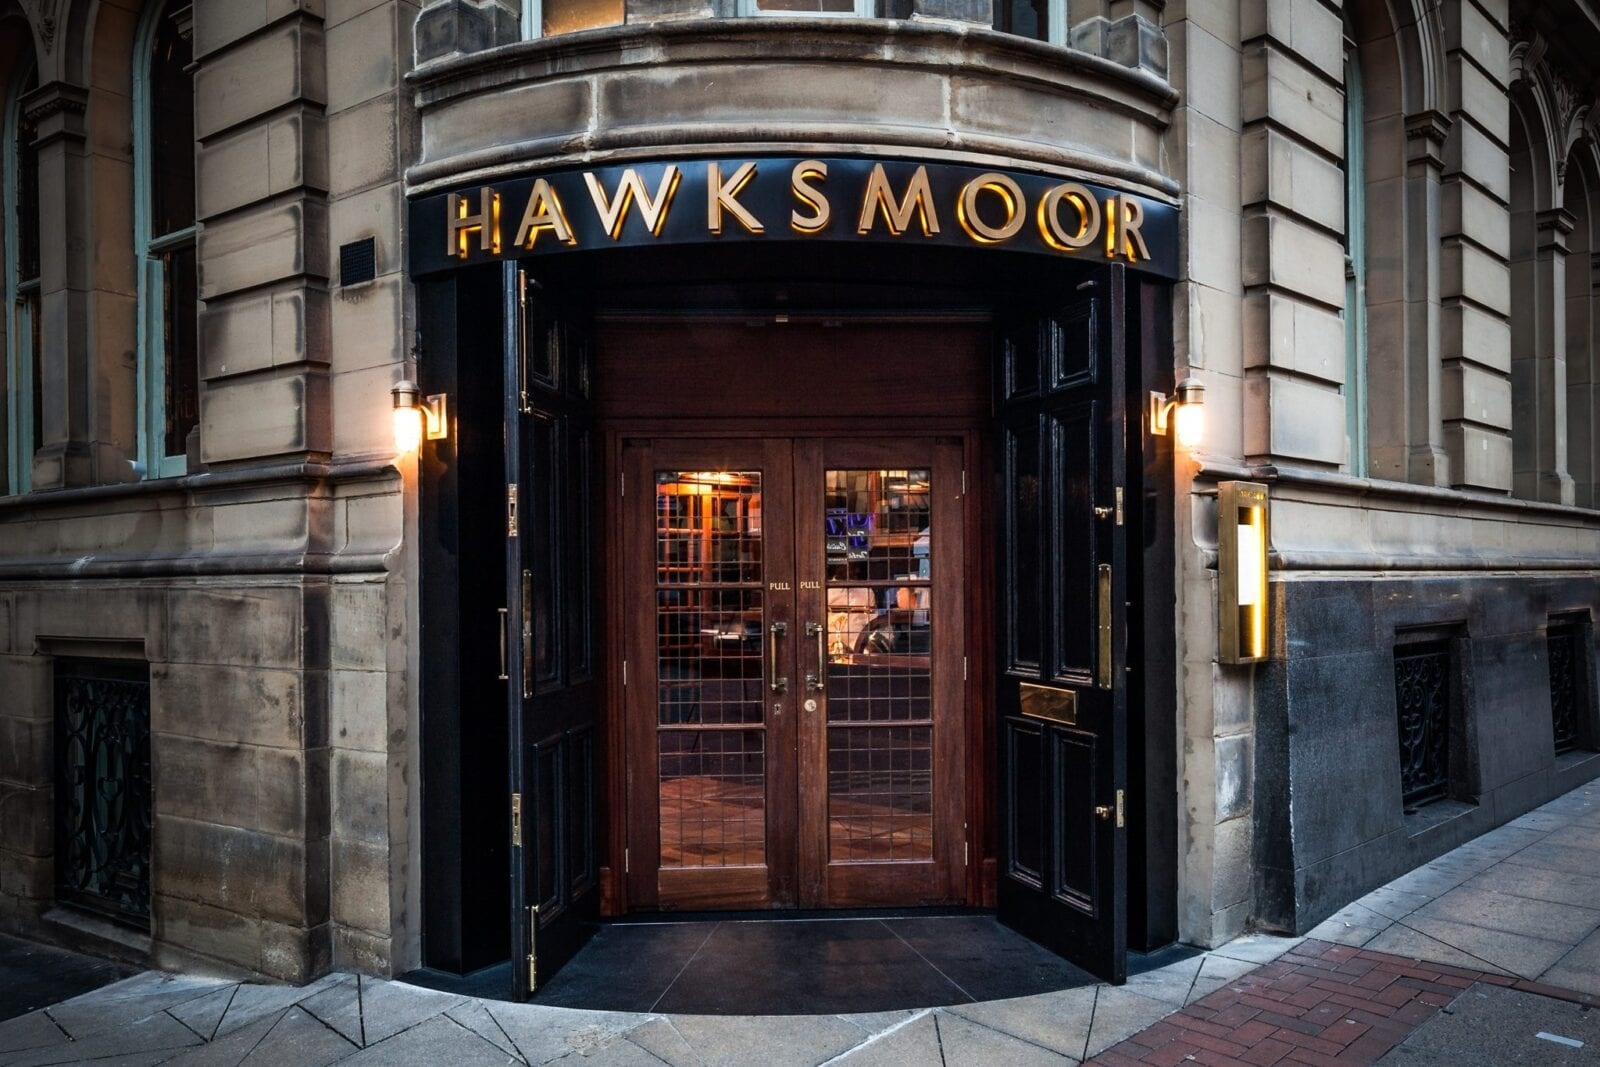 'Hawksmoor Hamburger' voted one of the best in Europe, The Manc